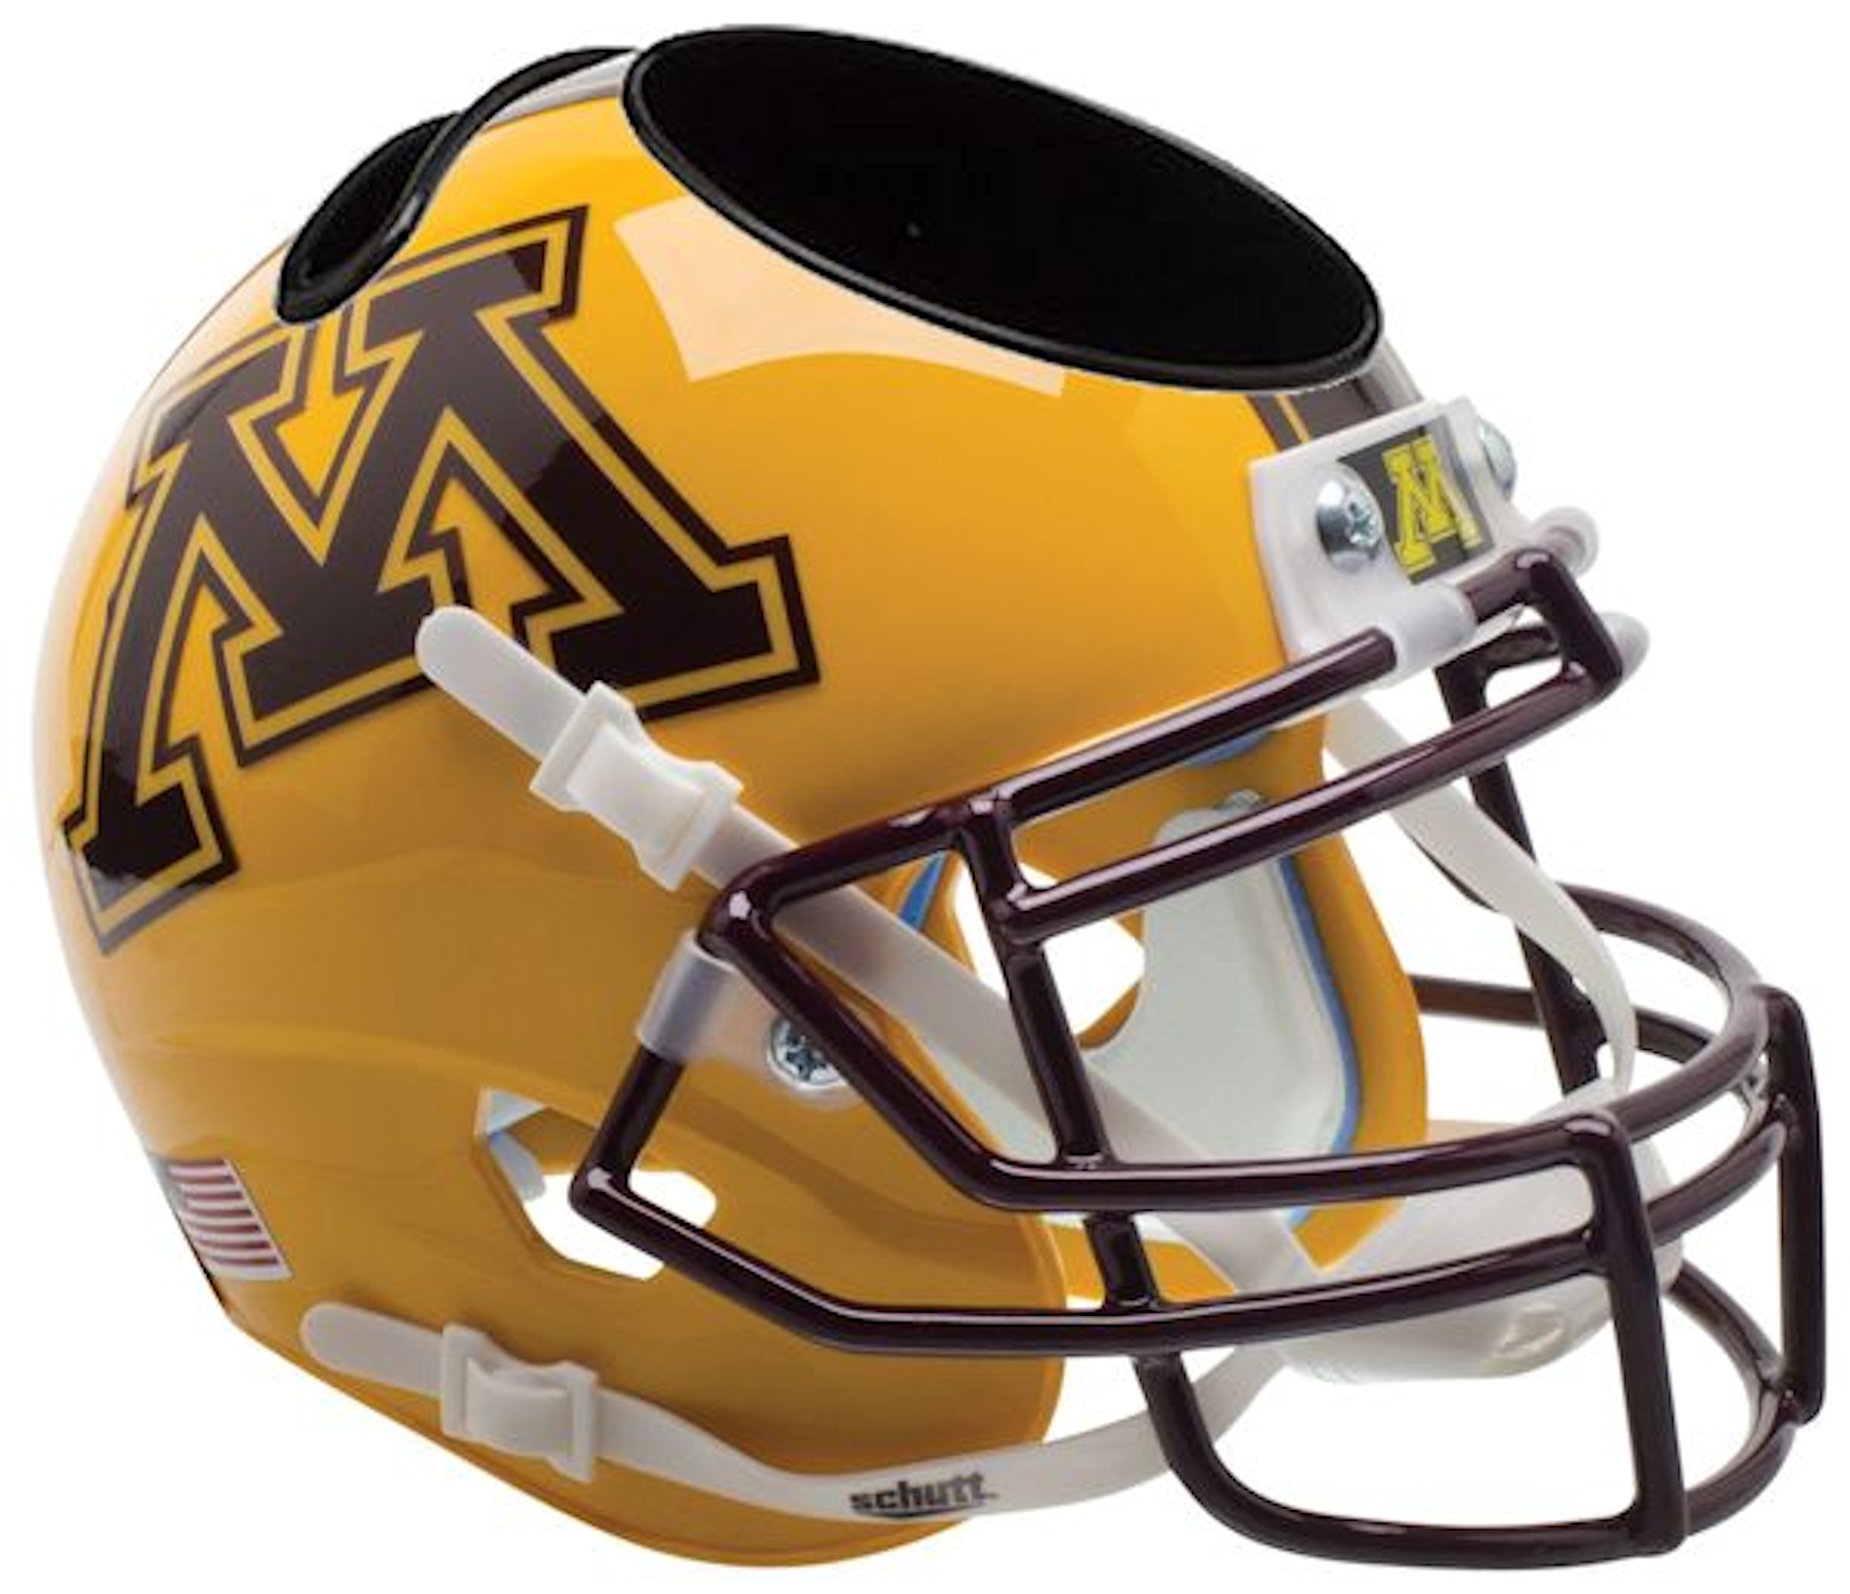 Minnesota Golden Gophers Miniature Football Helmet Desk Caddy <B>Gold</B>